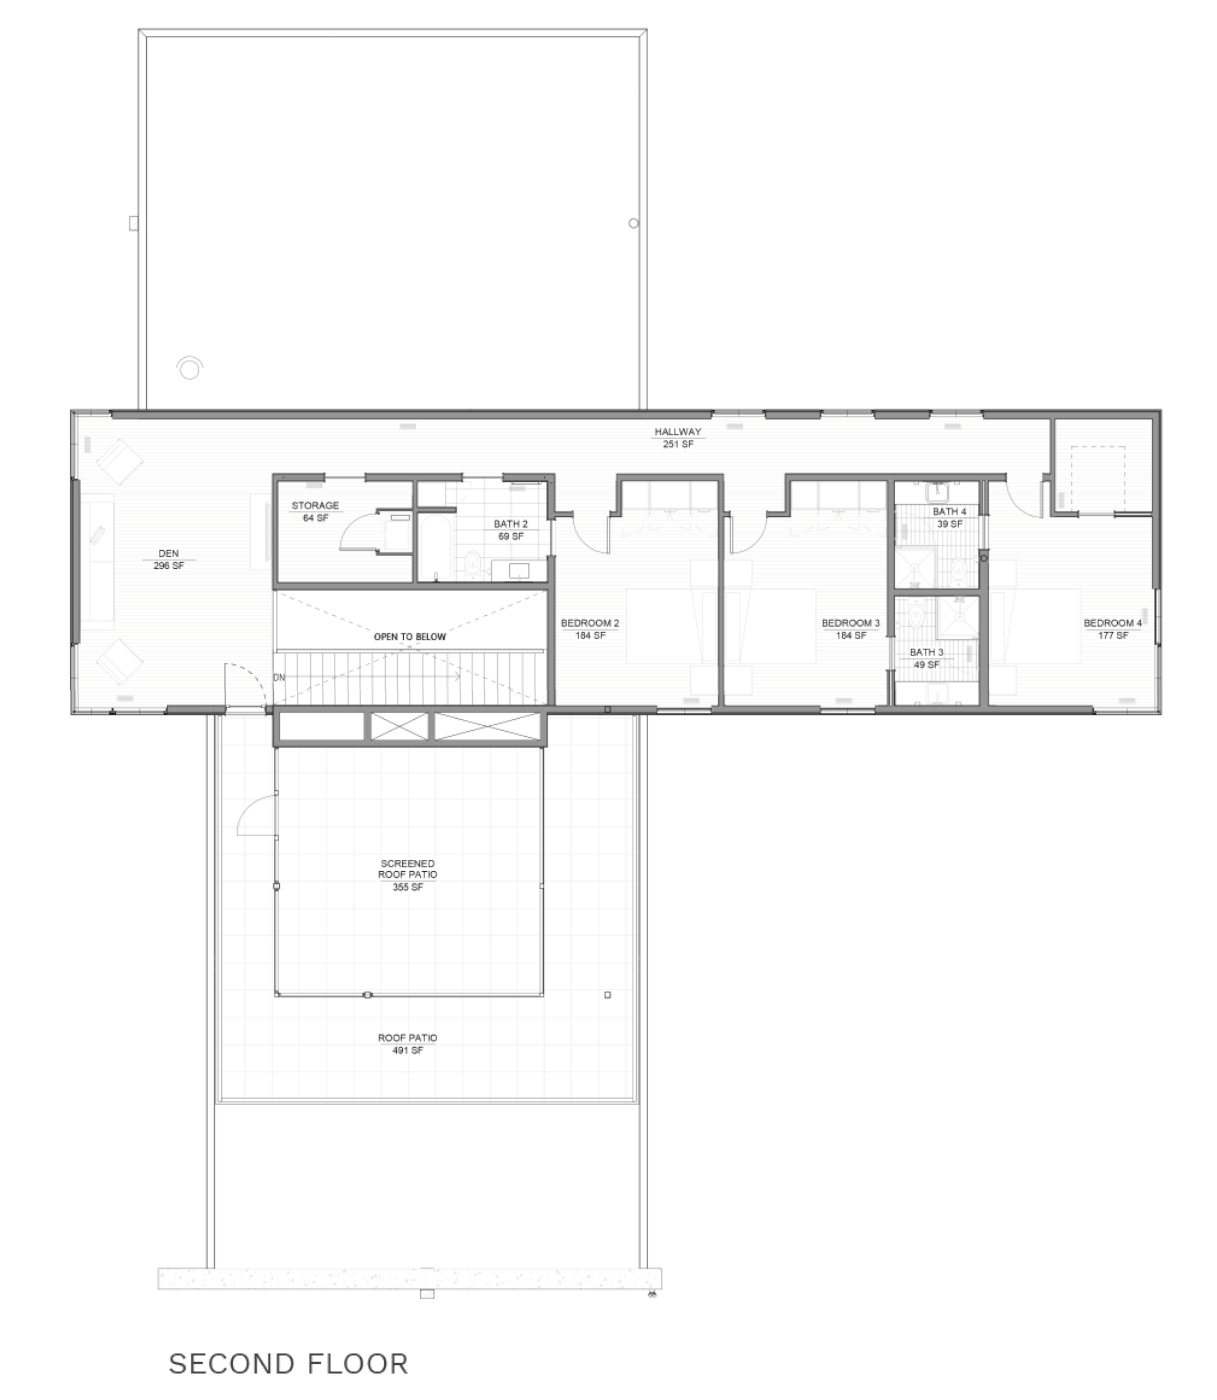 floorplan of second floor